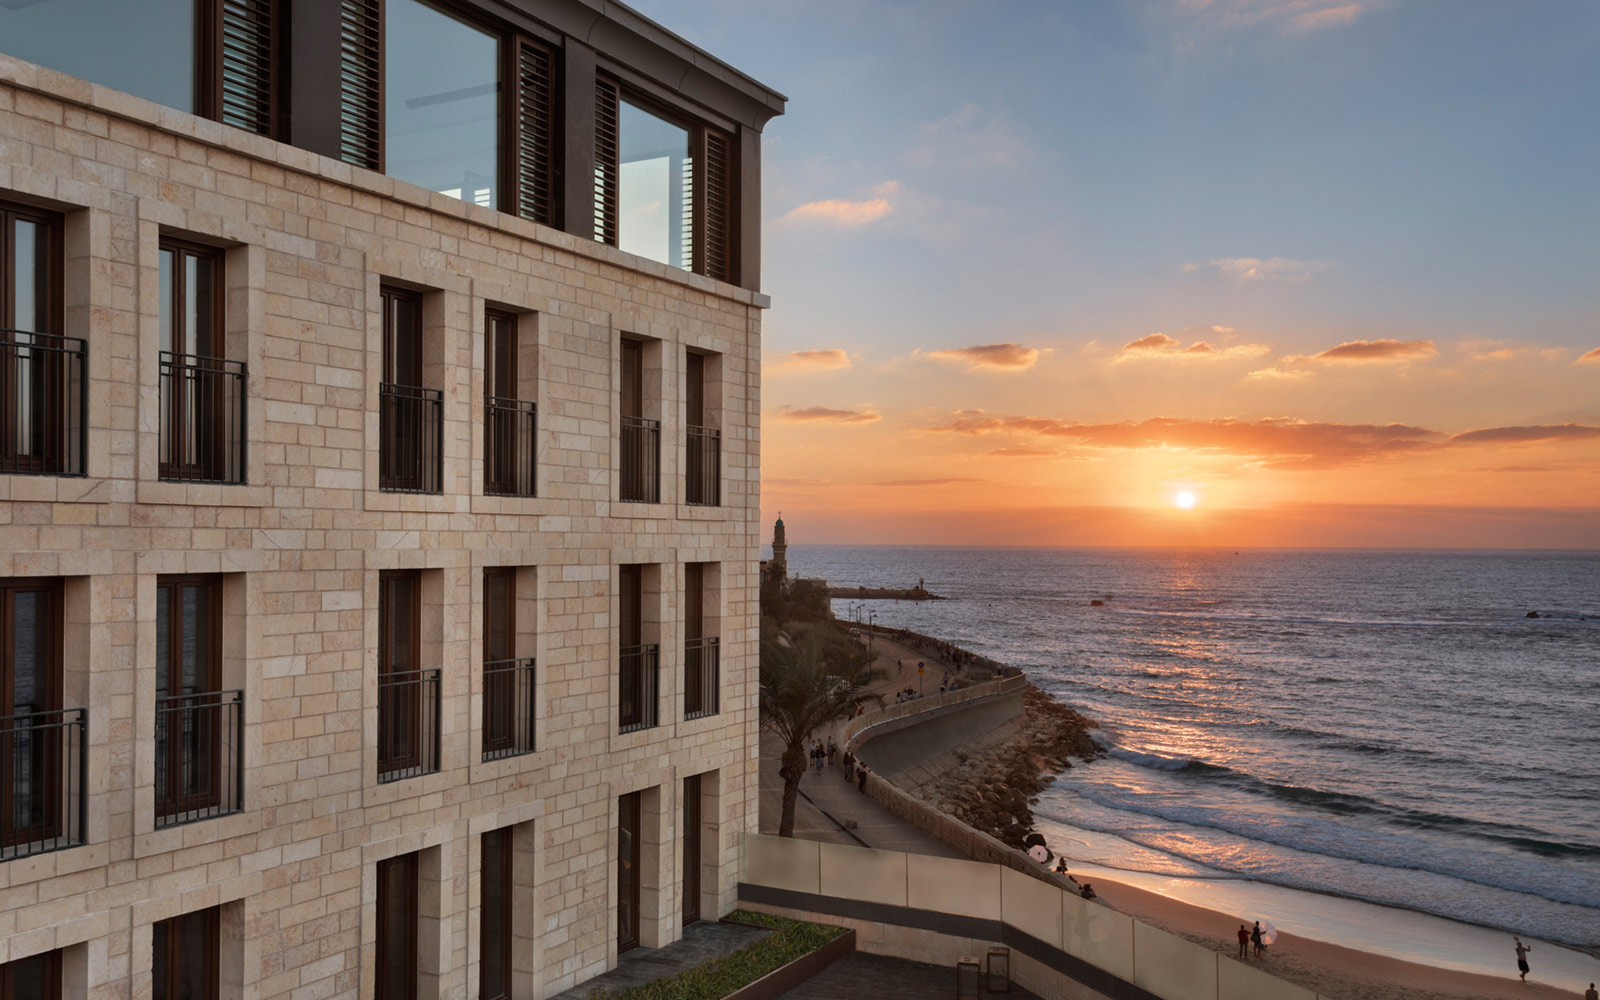 Beach view at The Setai Tel Aviv during sunset